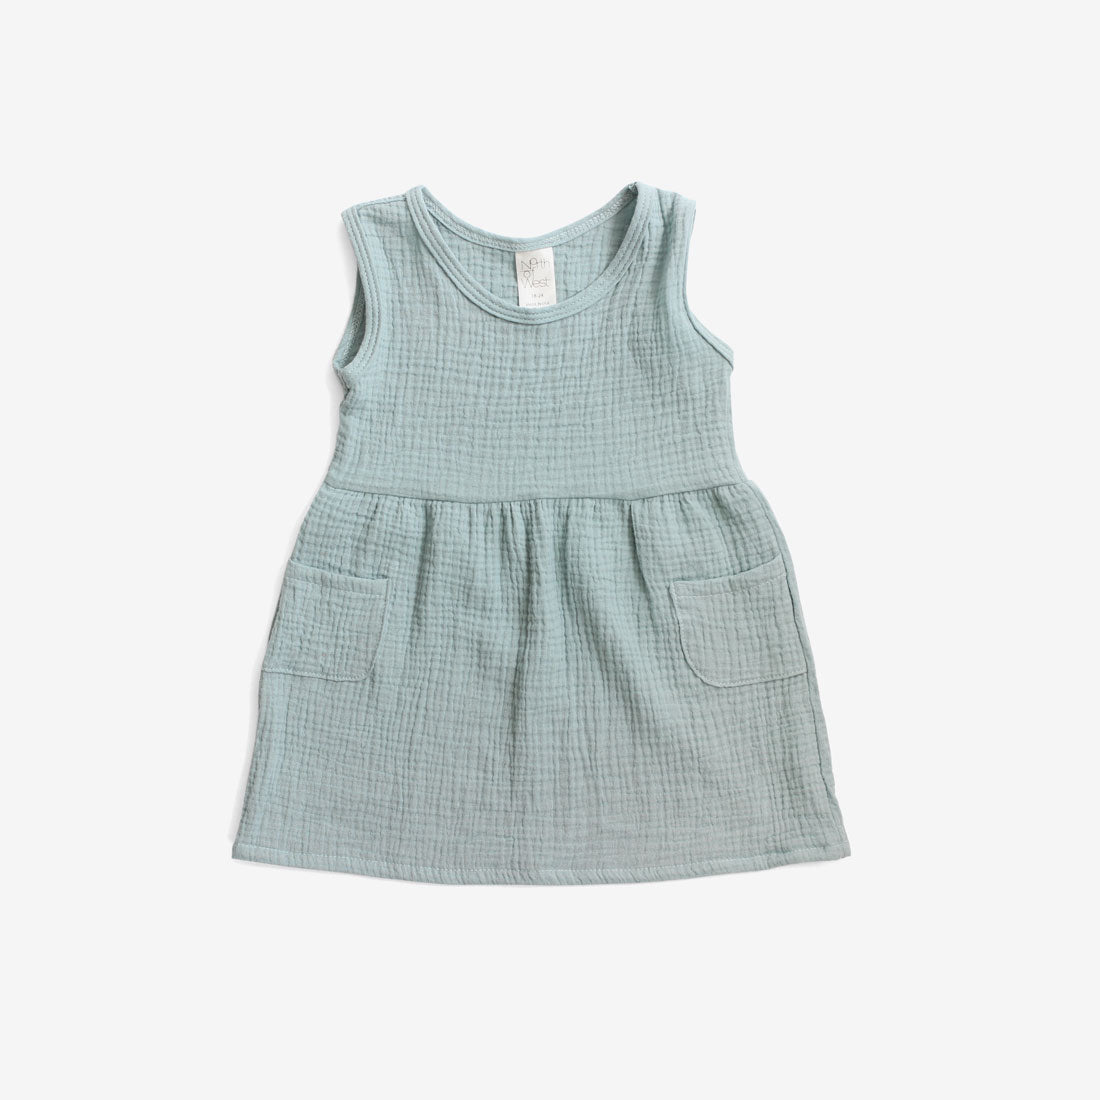 Double Gauze Woven Tank Dress - Dusty Aqua